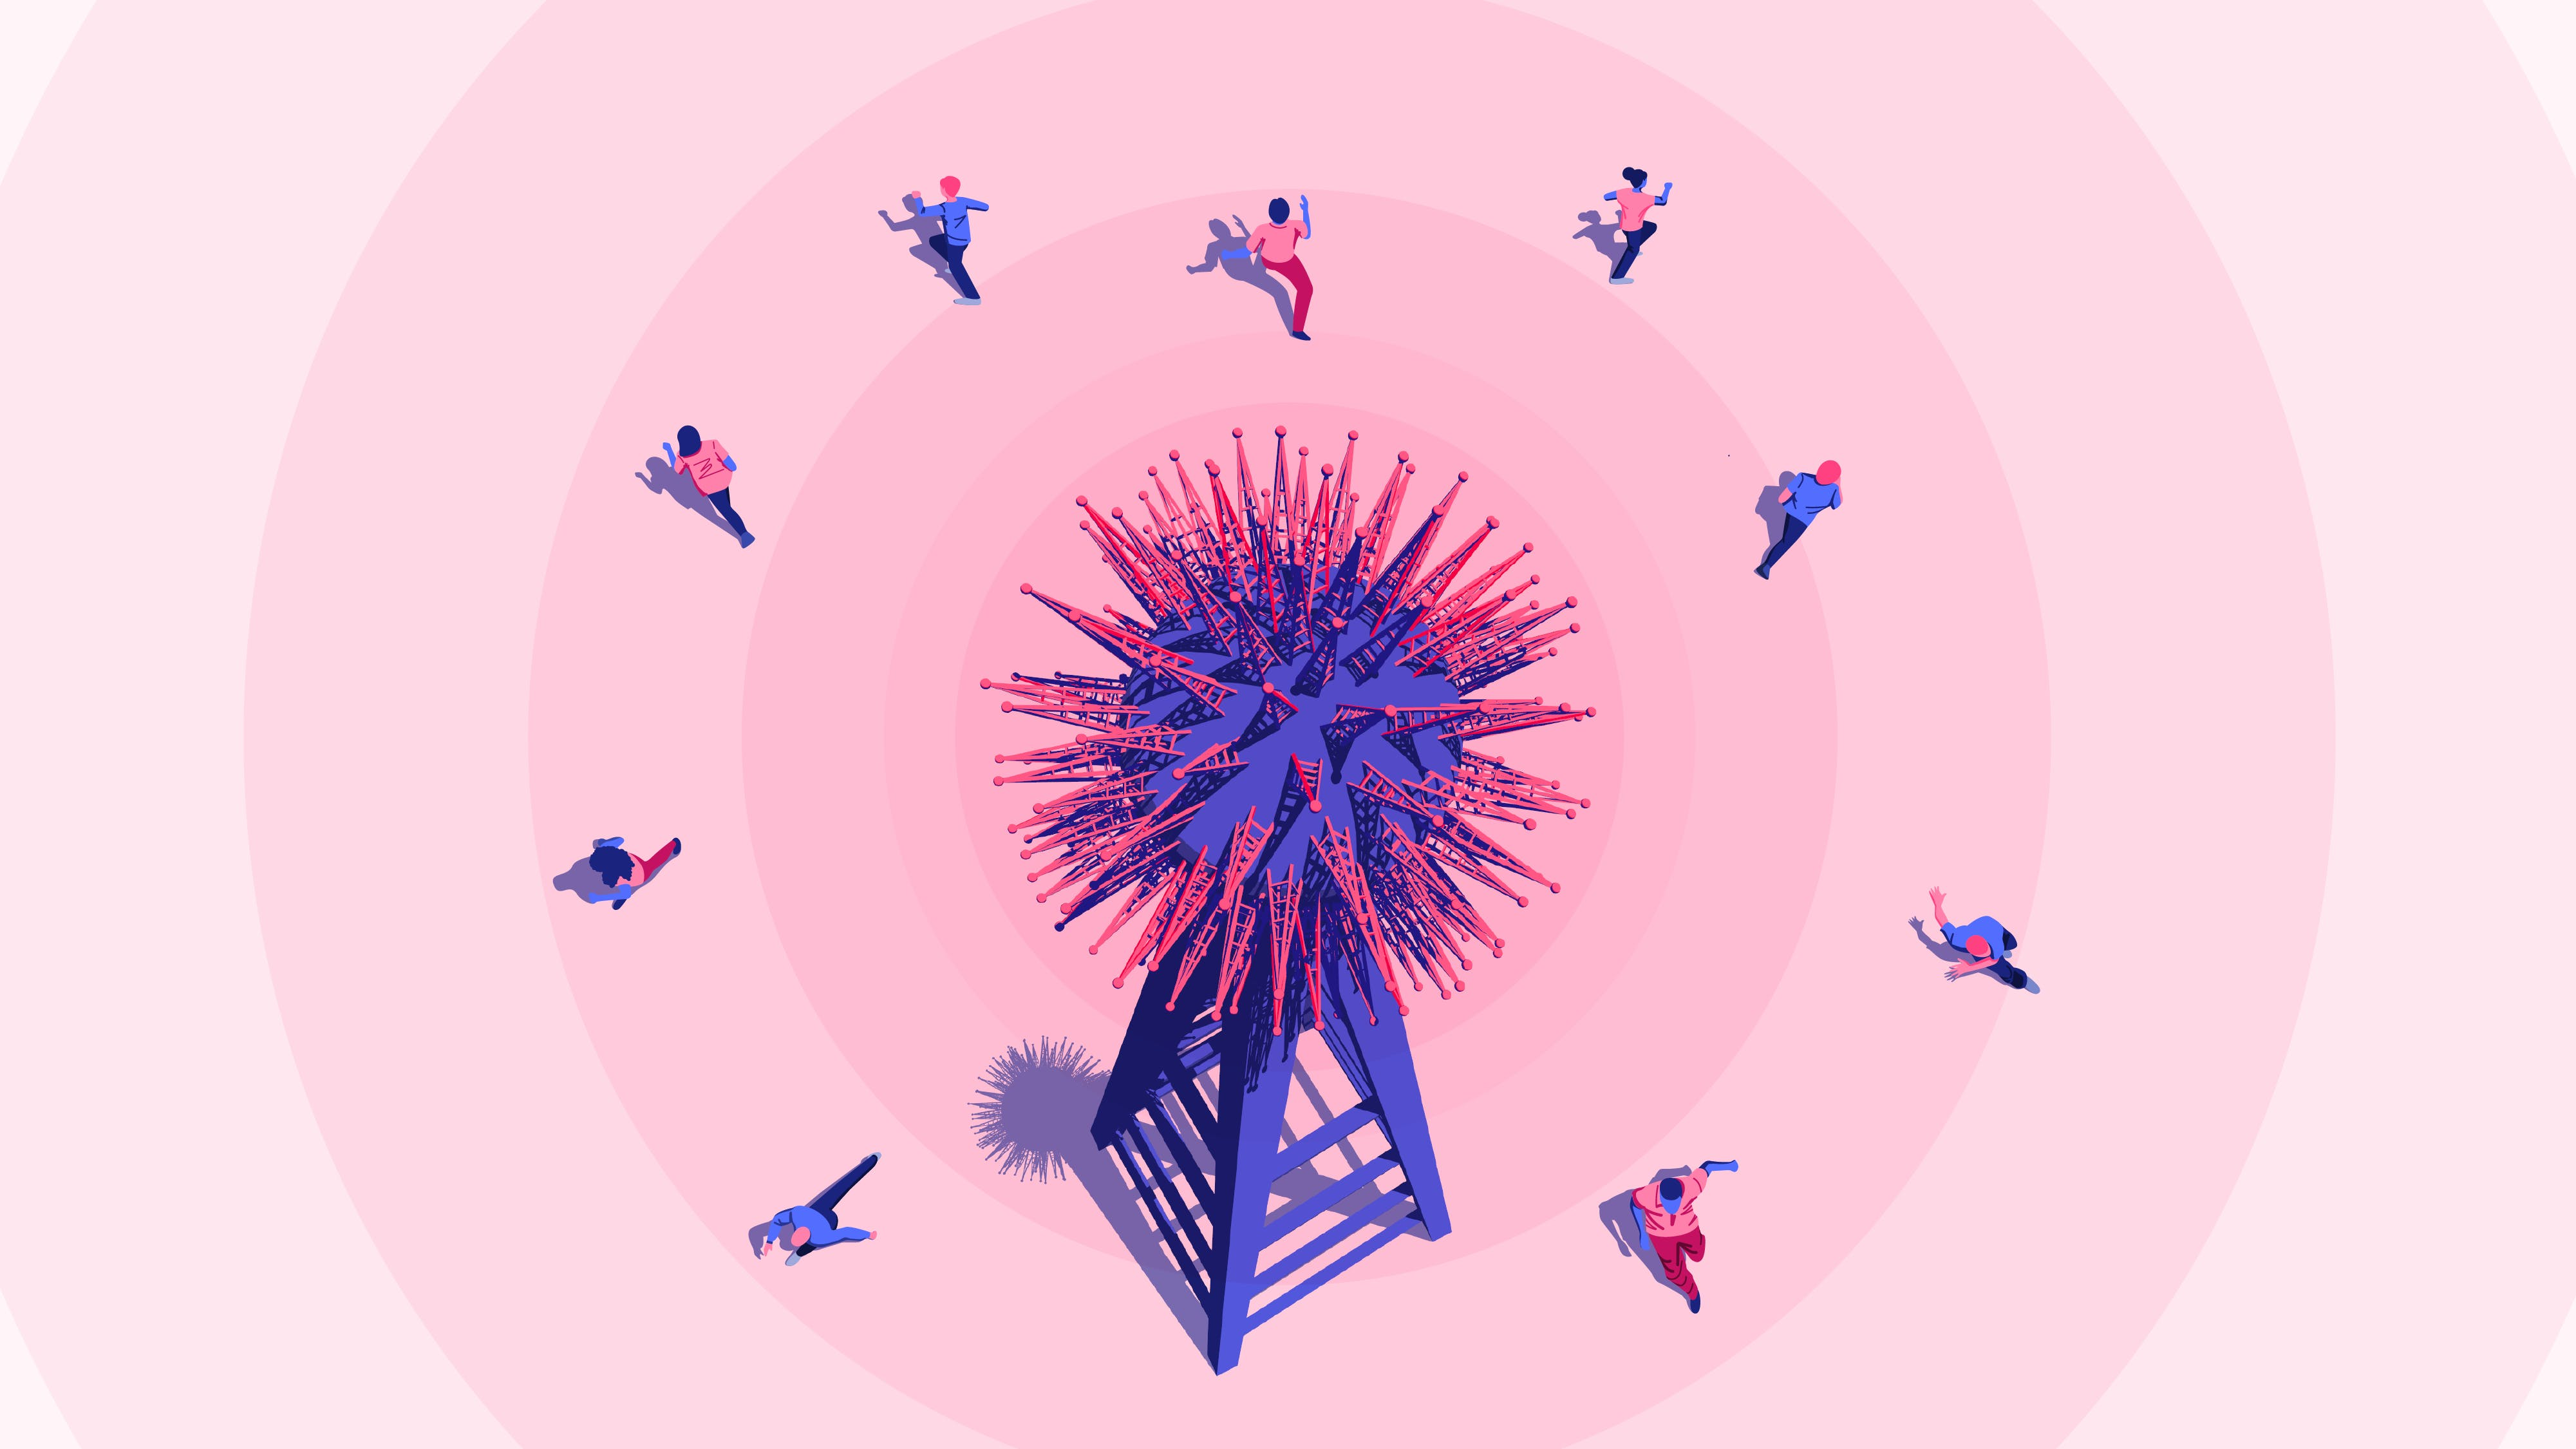 Illustration: a 5G tower from which people, afraid of contracting Covid-19, seek to escape